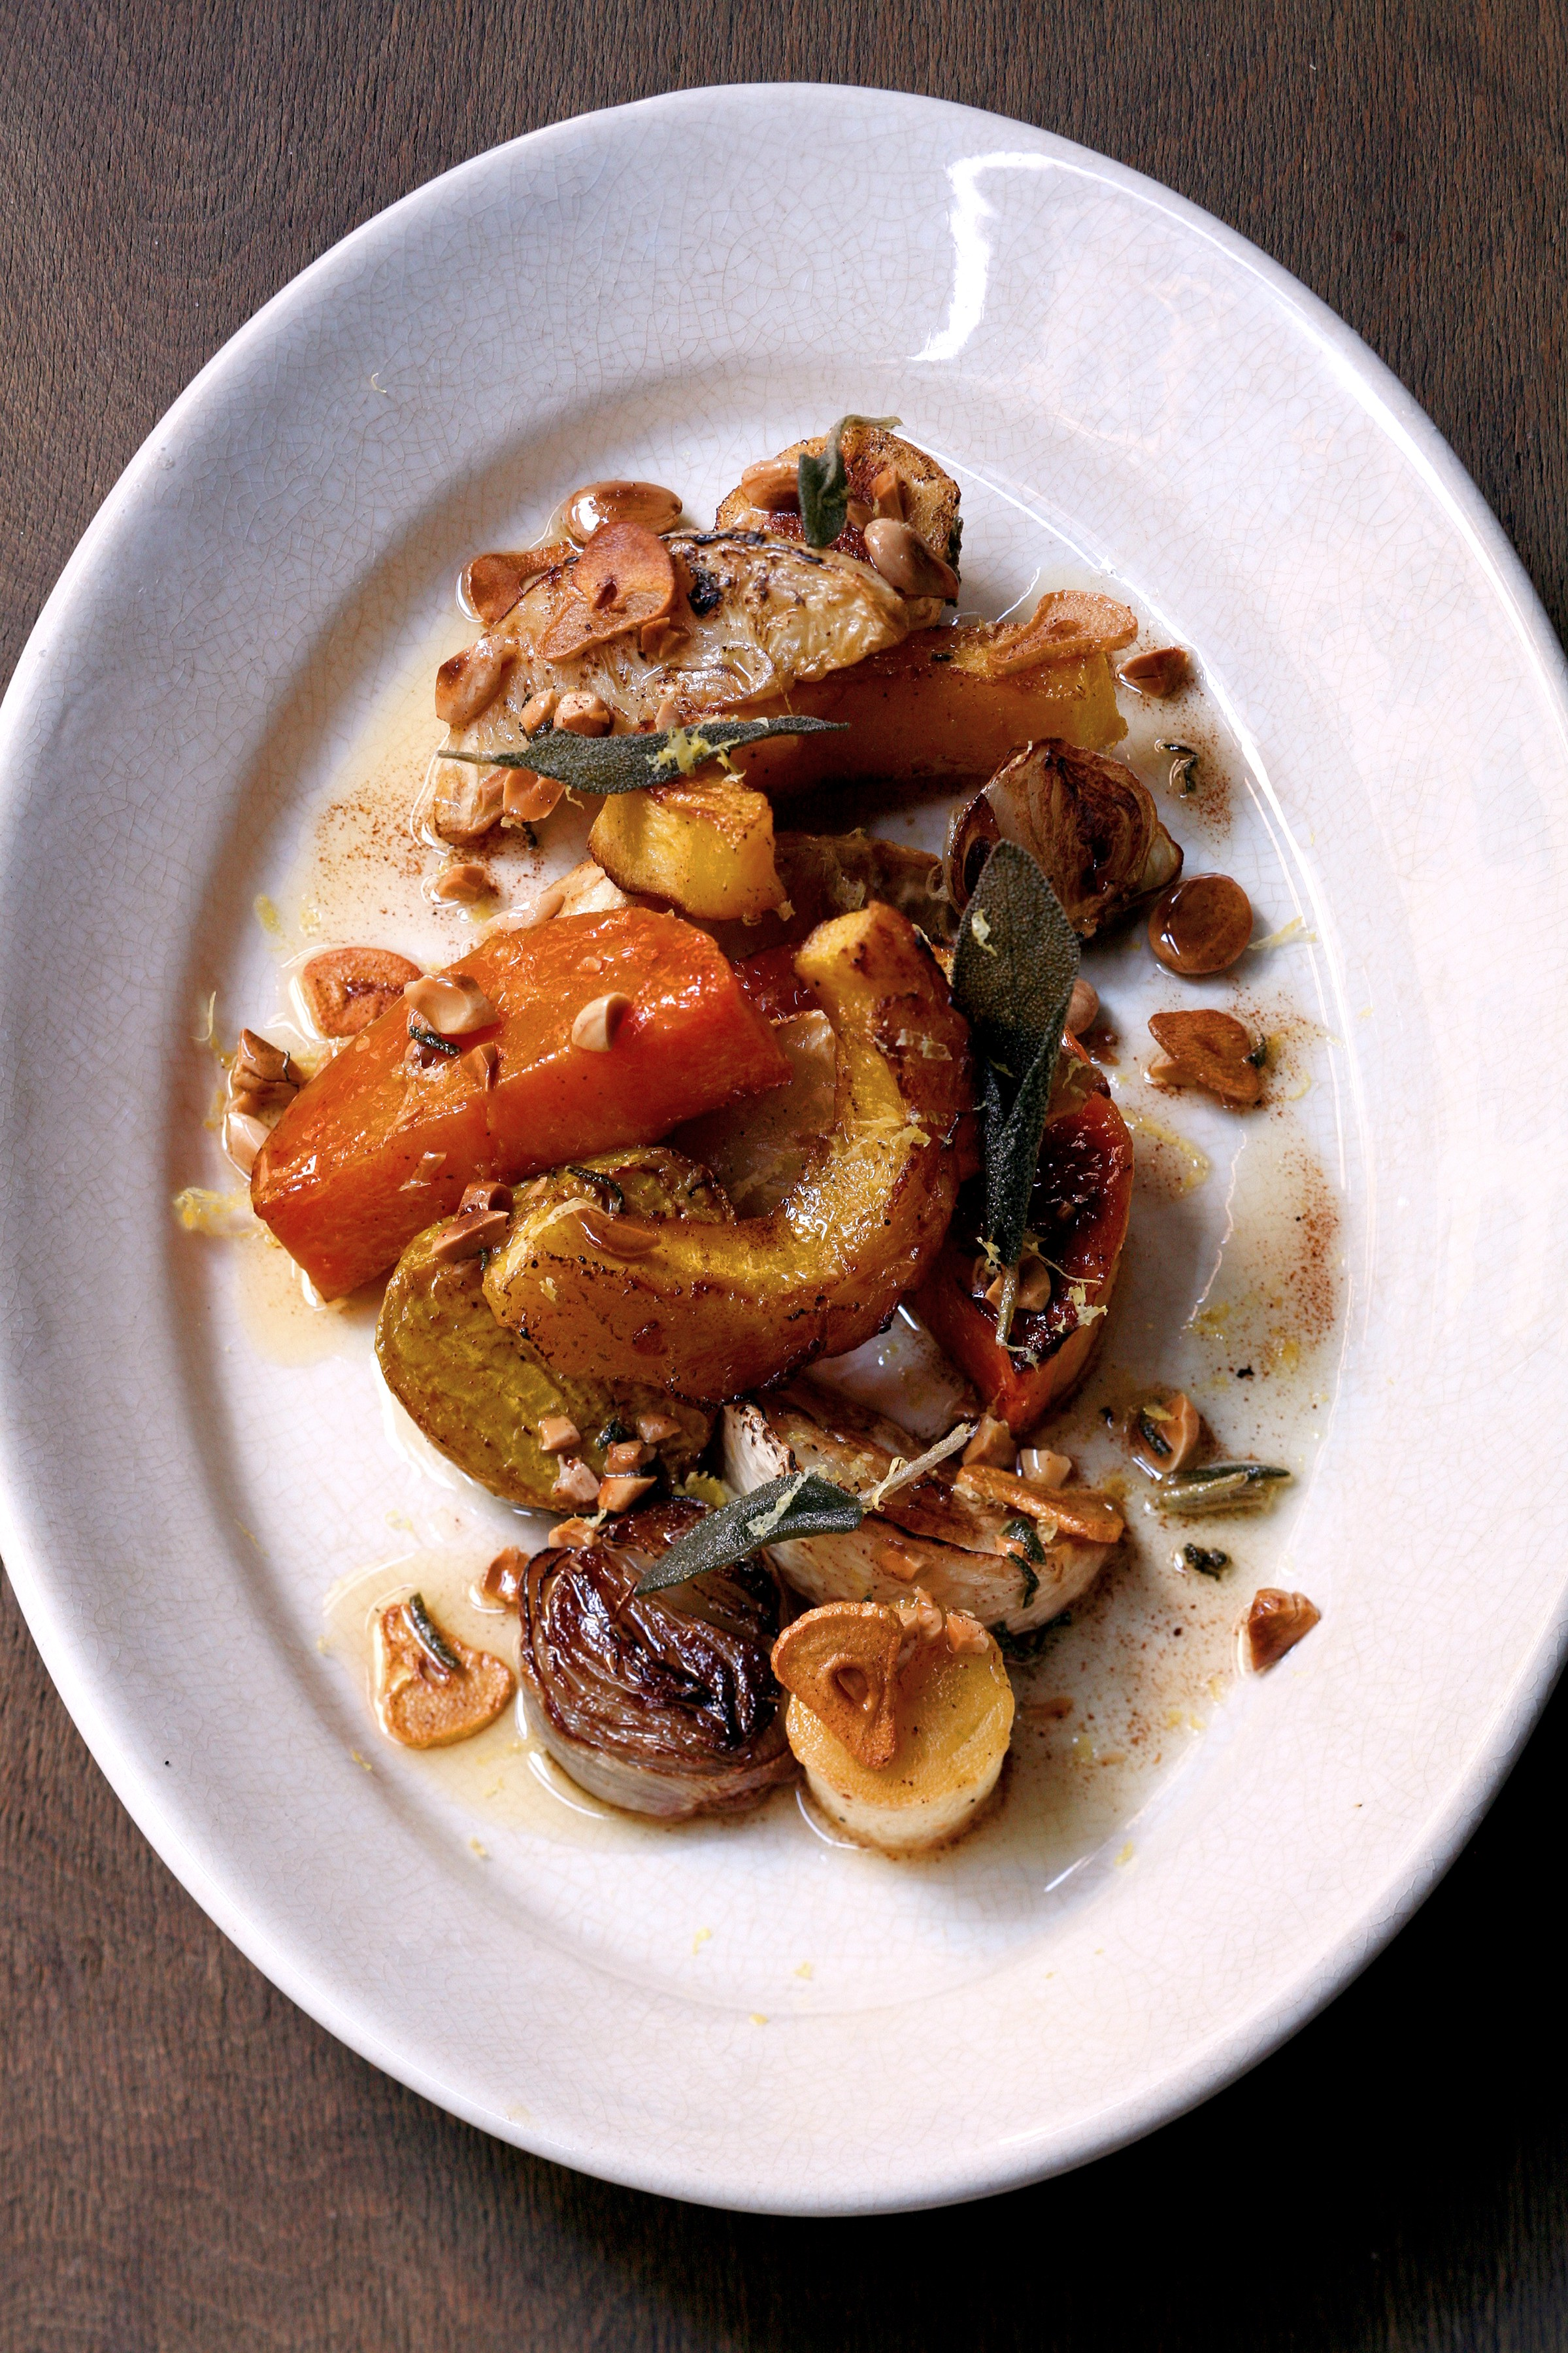 TBT Cookbook Review and Recipe: Fresh from the Market and Roasted Root Vegetable Salad with Marcona Almonds